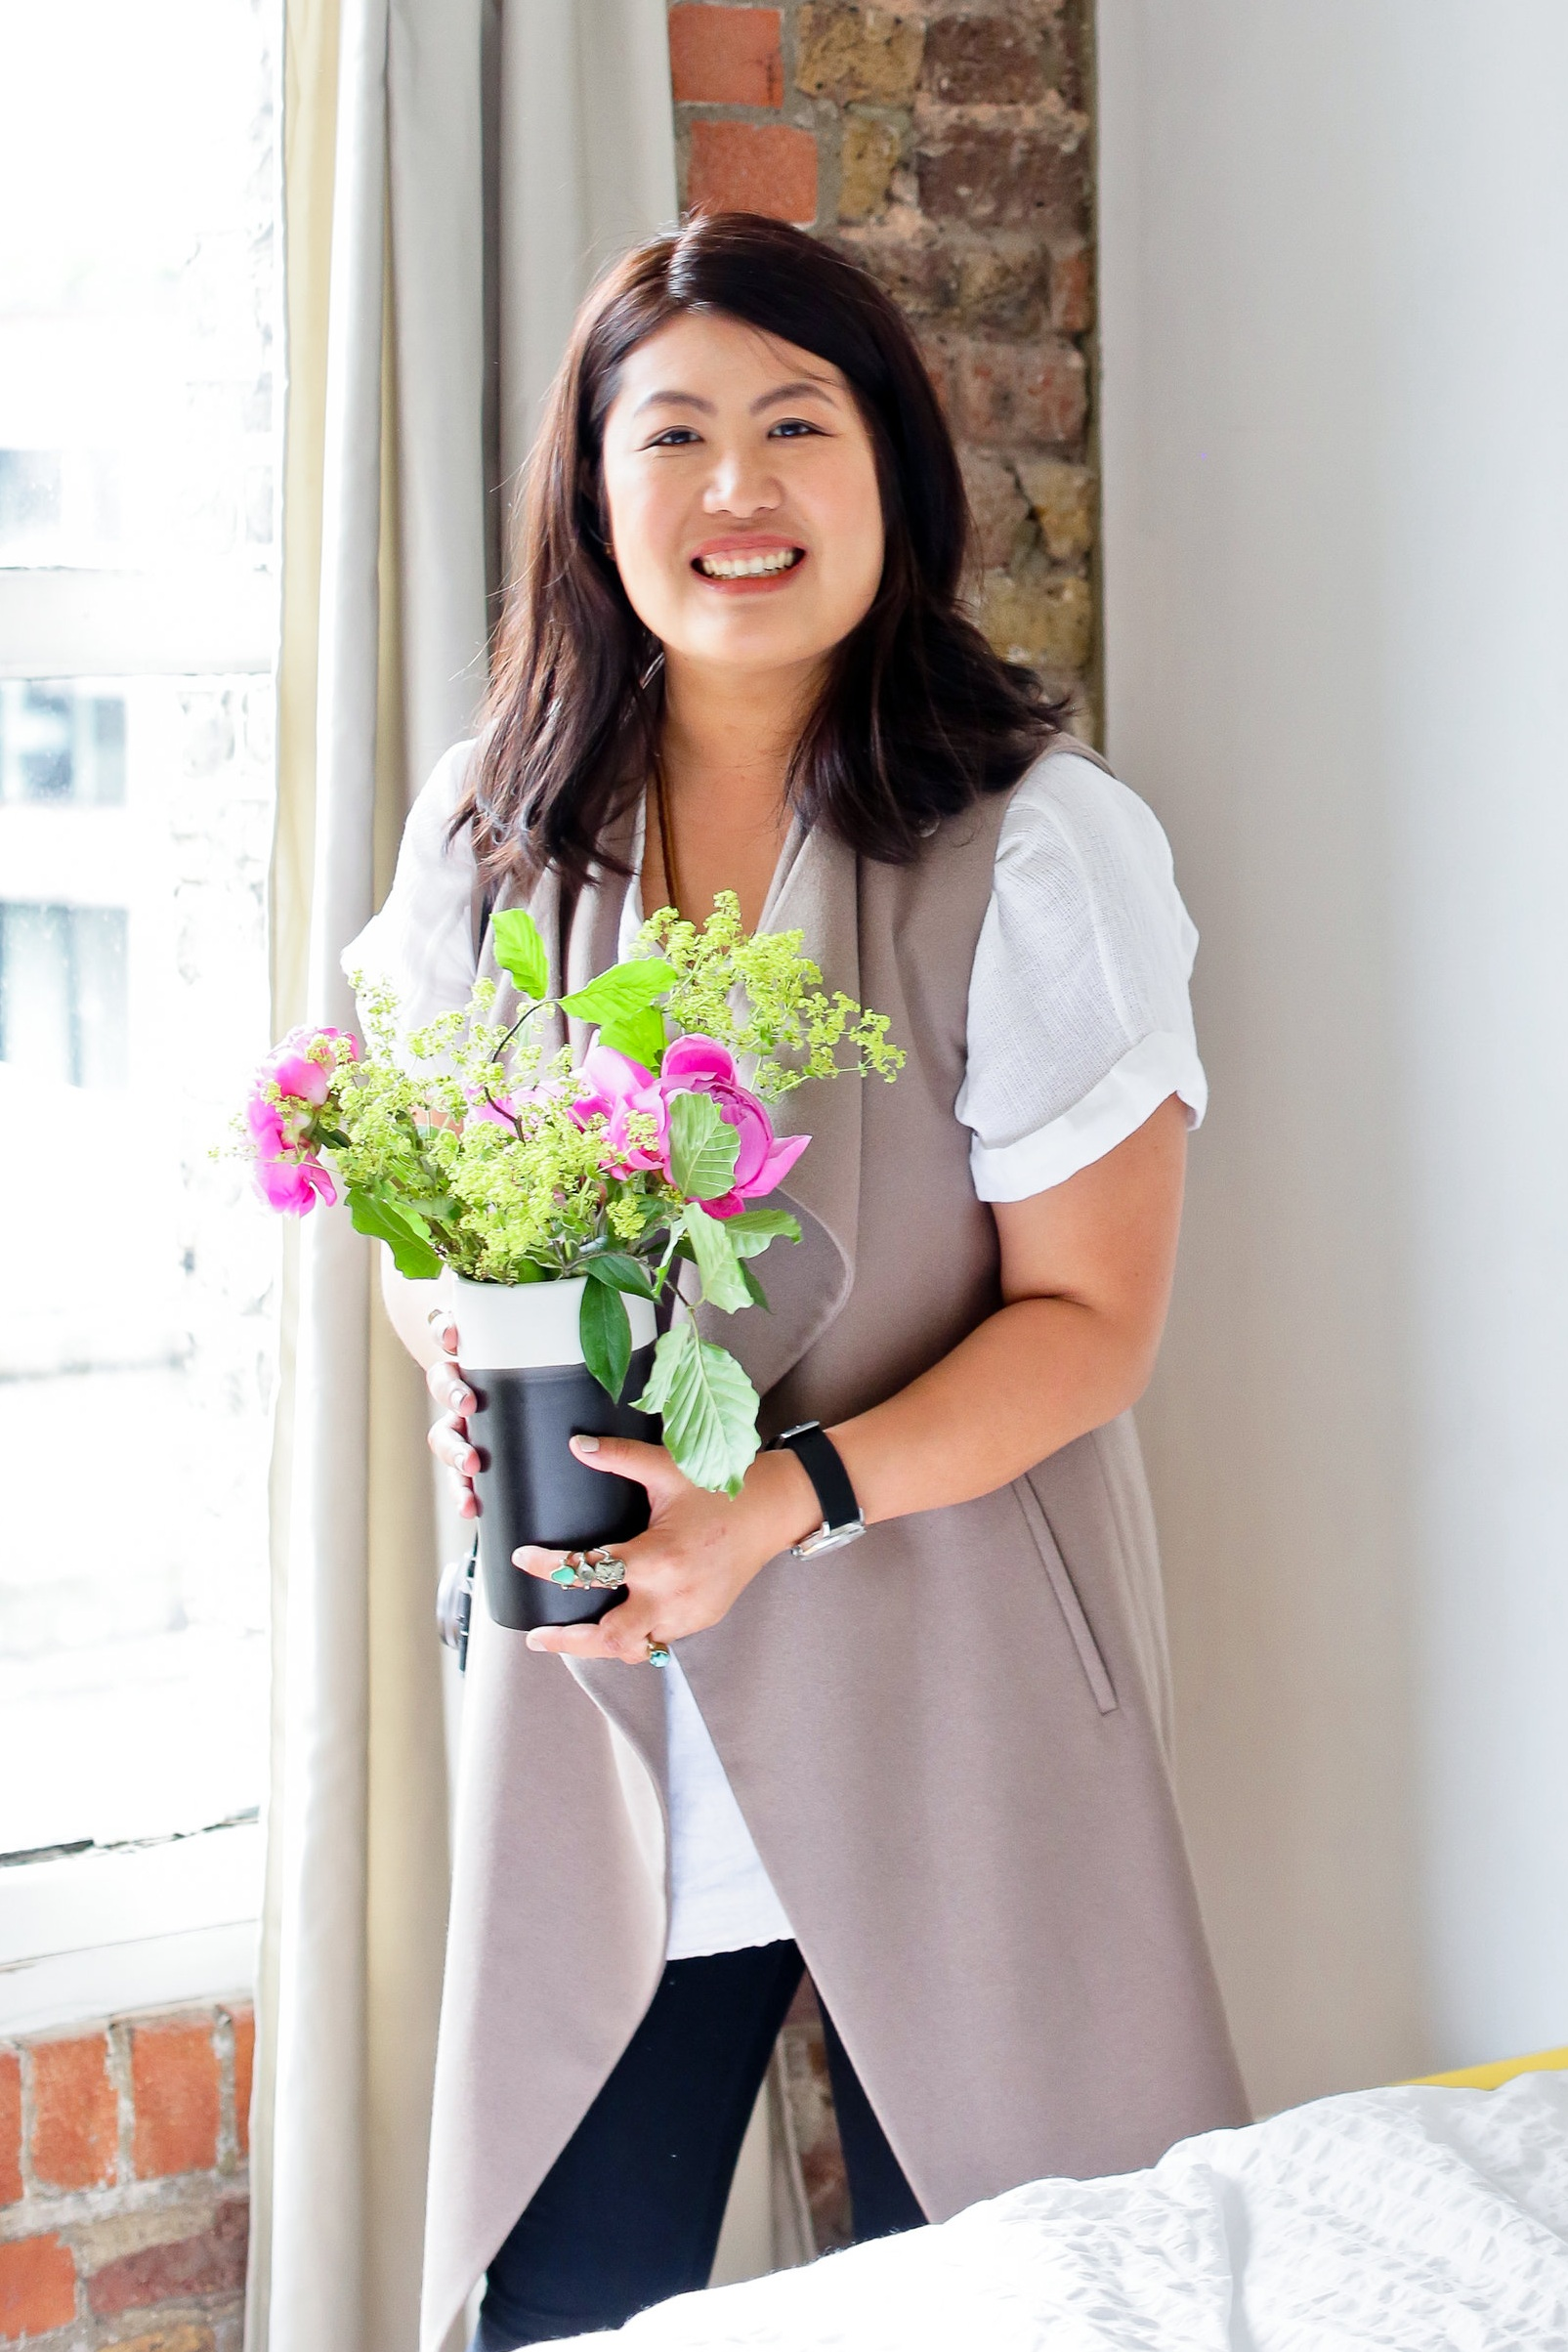 About Cindy Lin, the Host of The Home Staging Show Podcast